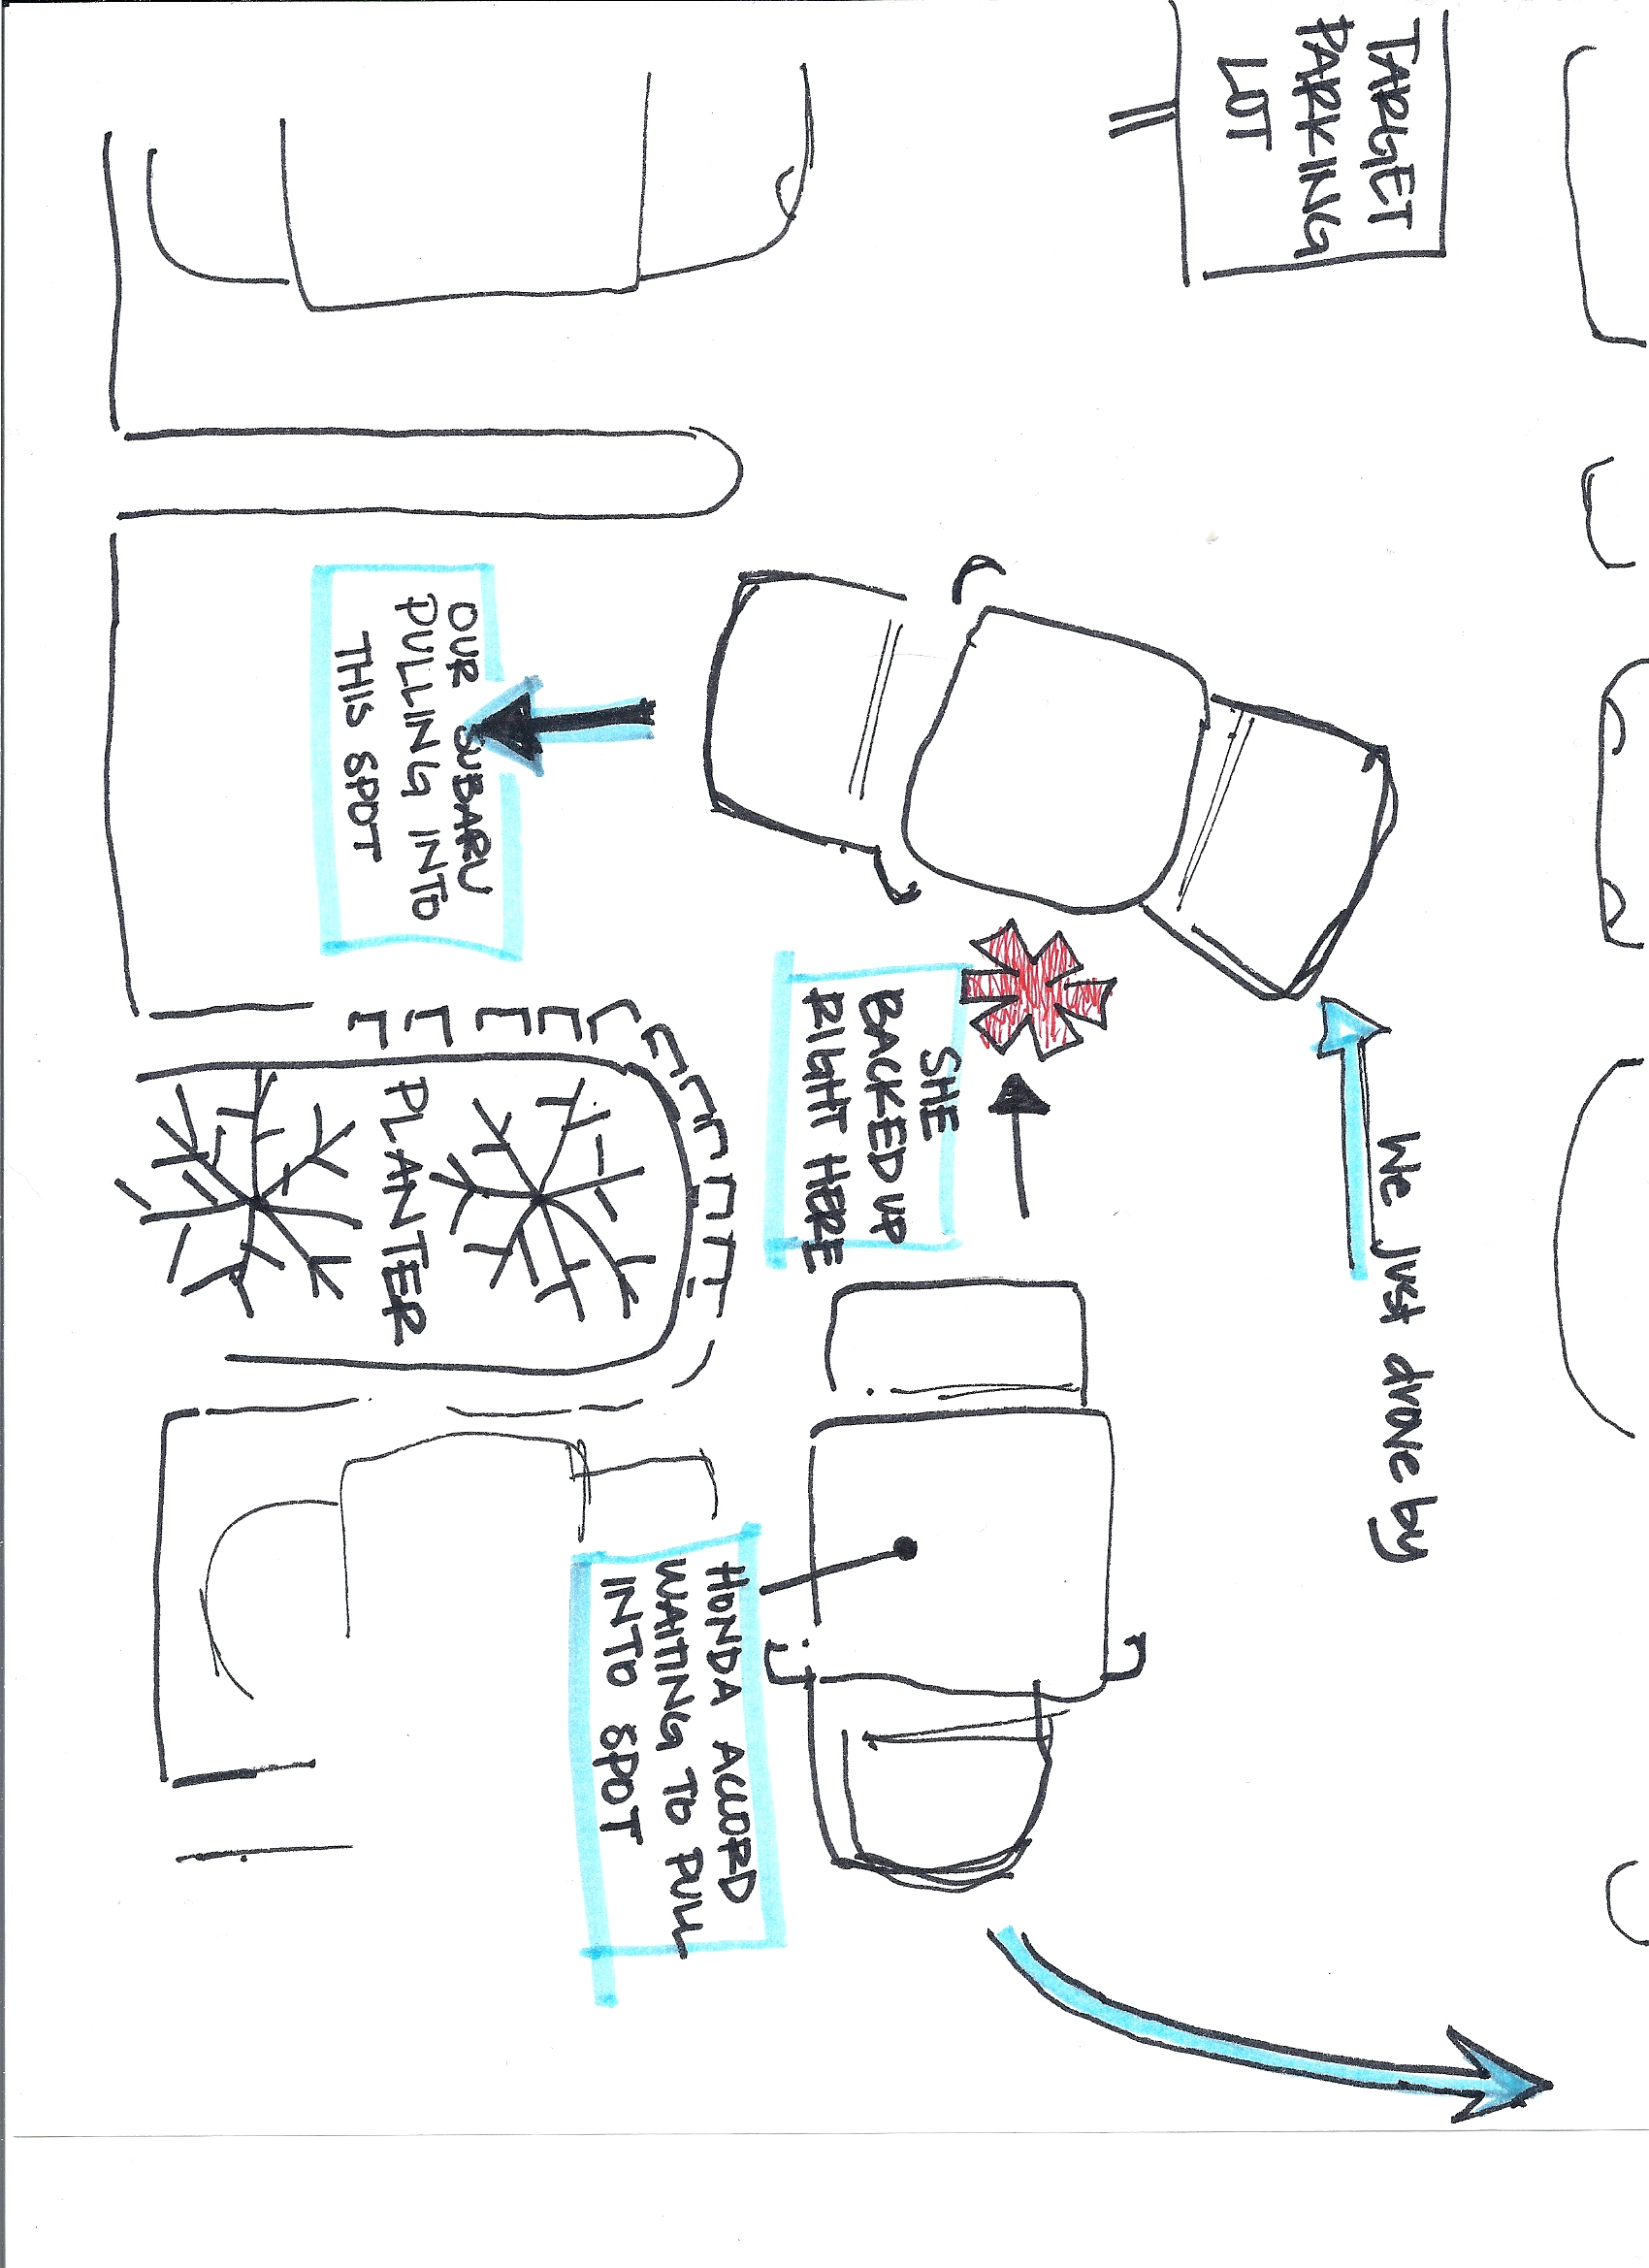 Traffic Accident Sketch Templates